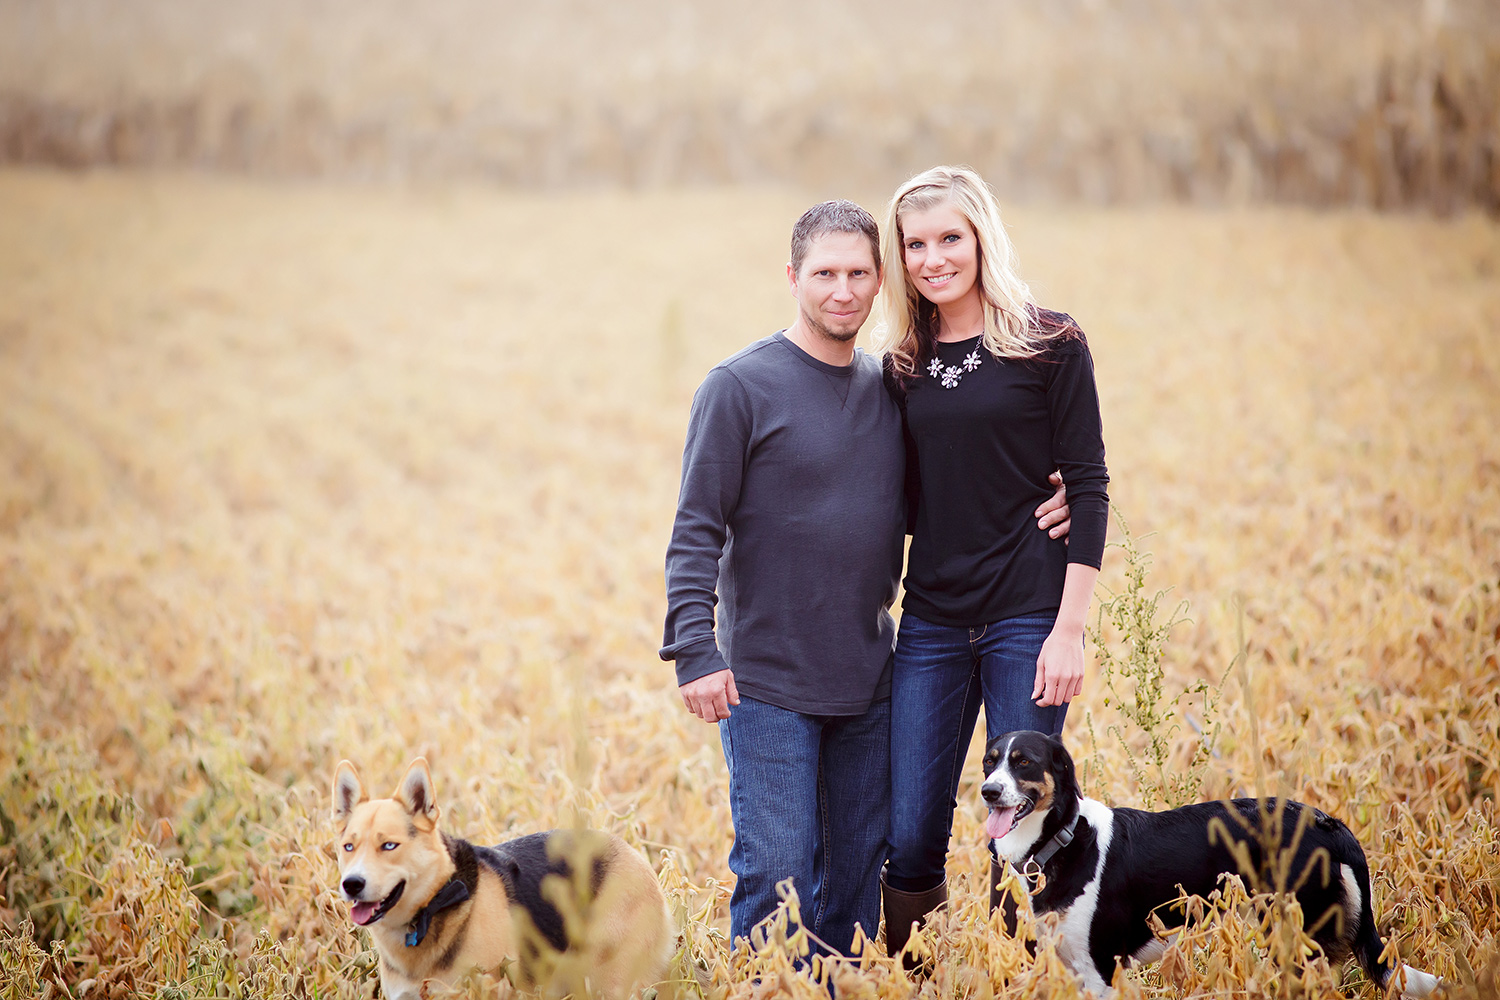 Engagement-session-photographers-berks-county-pa_008